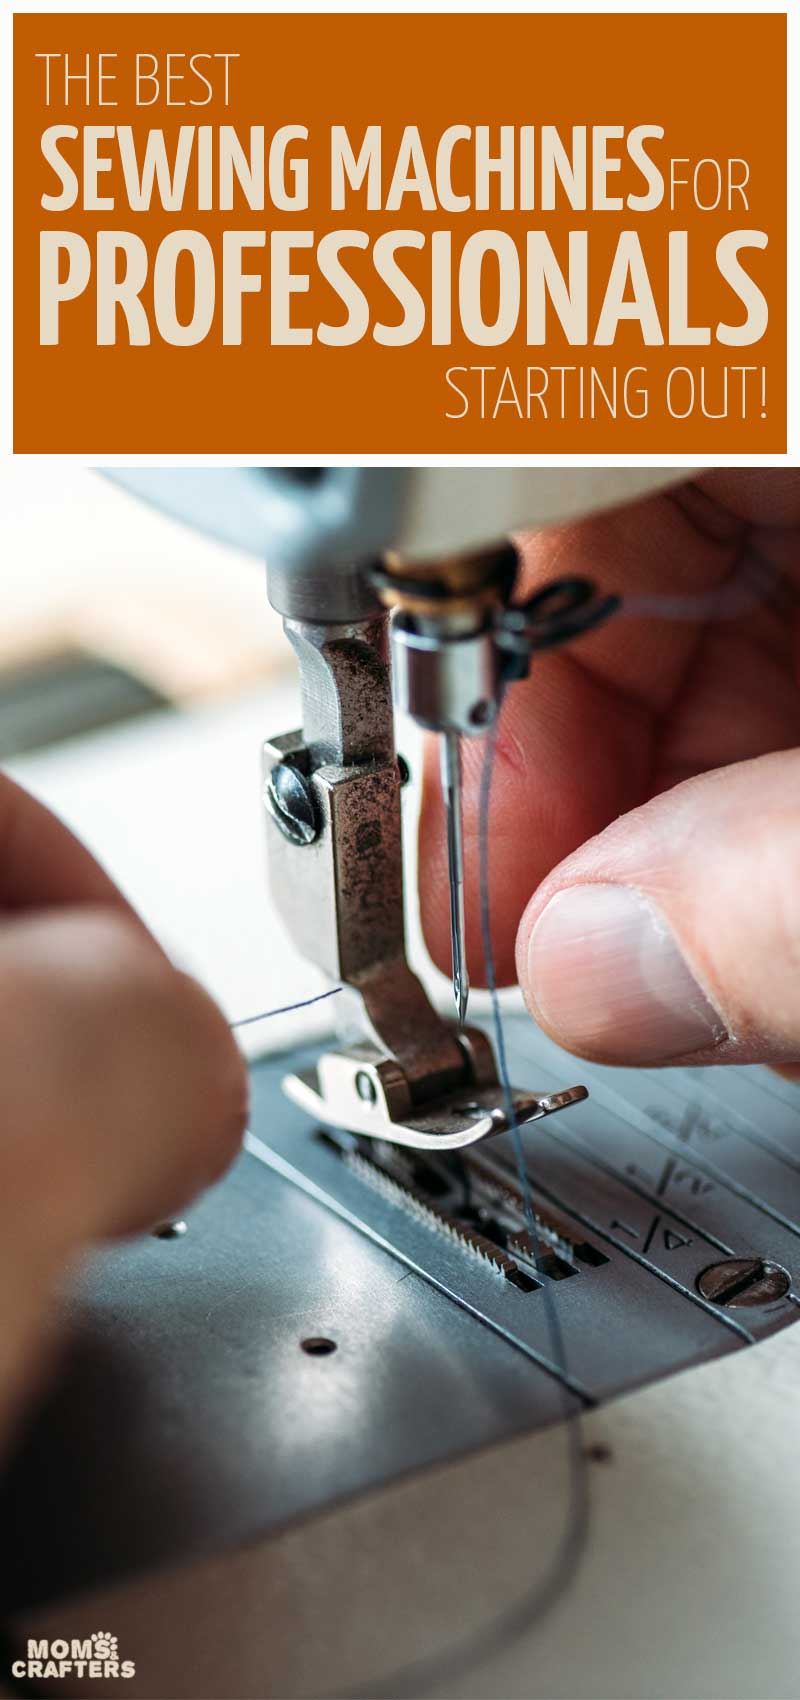 The best sewing machines for home businesses, dressmaking, and seamstresses as well as tailors - these best semi professional sewing machine options are perfect for accurate sewing and perfect seams.